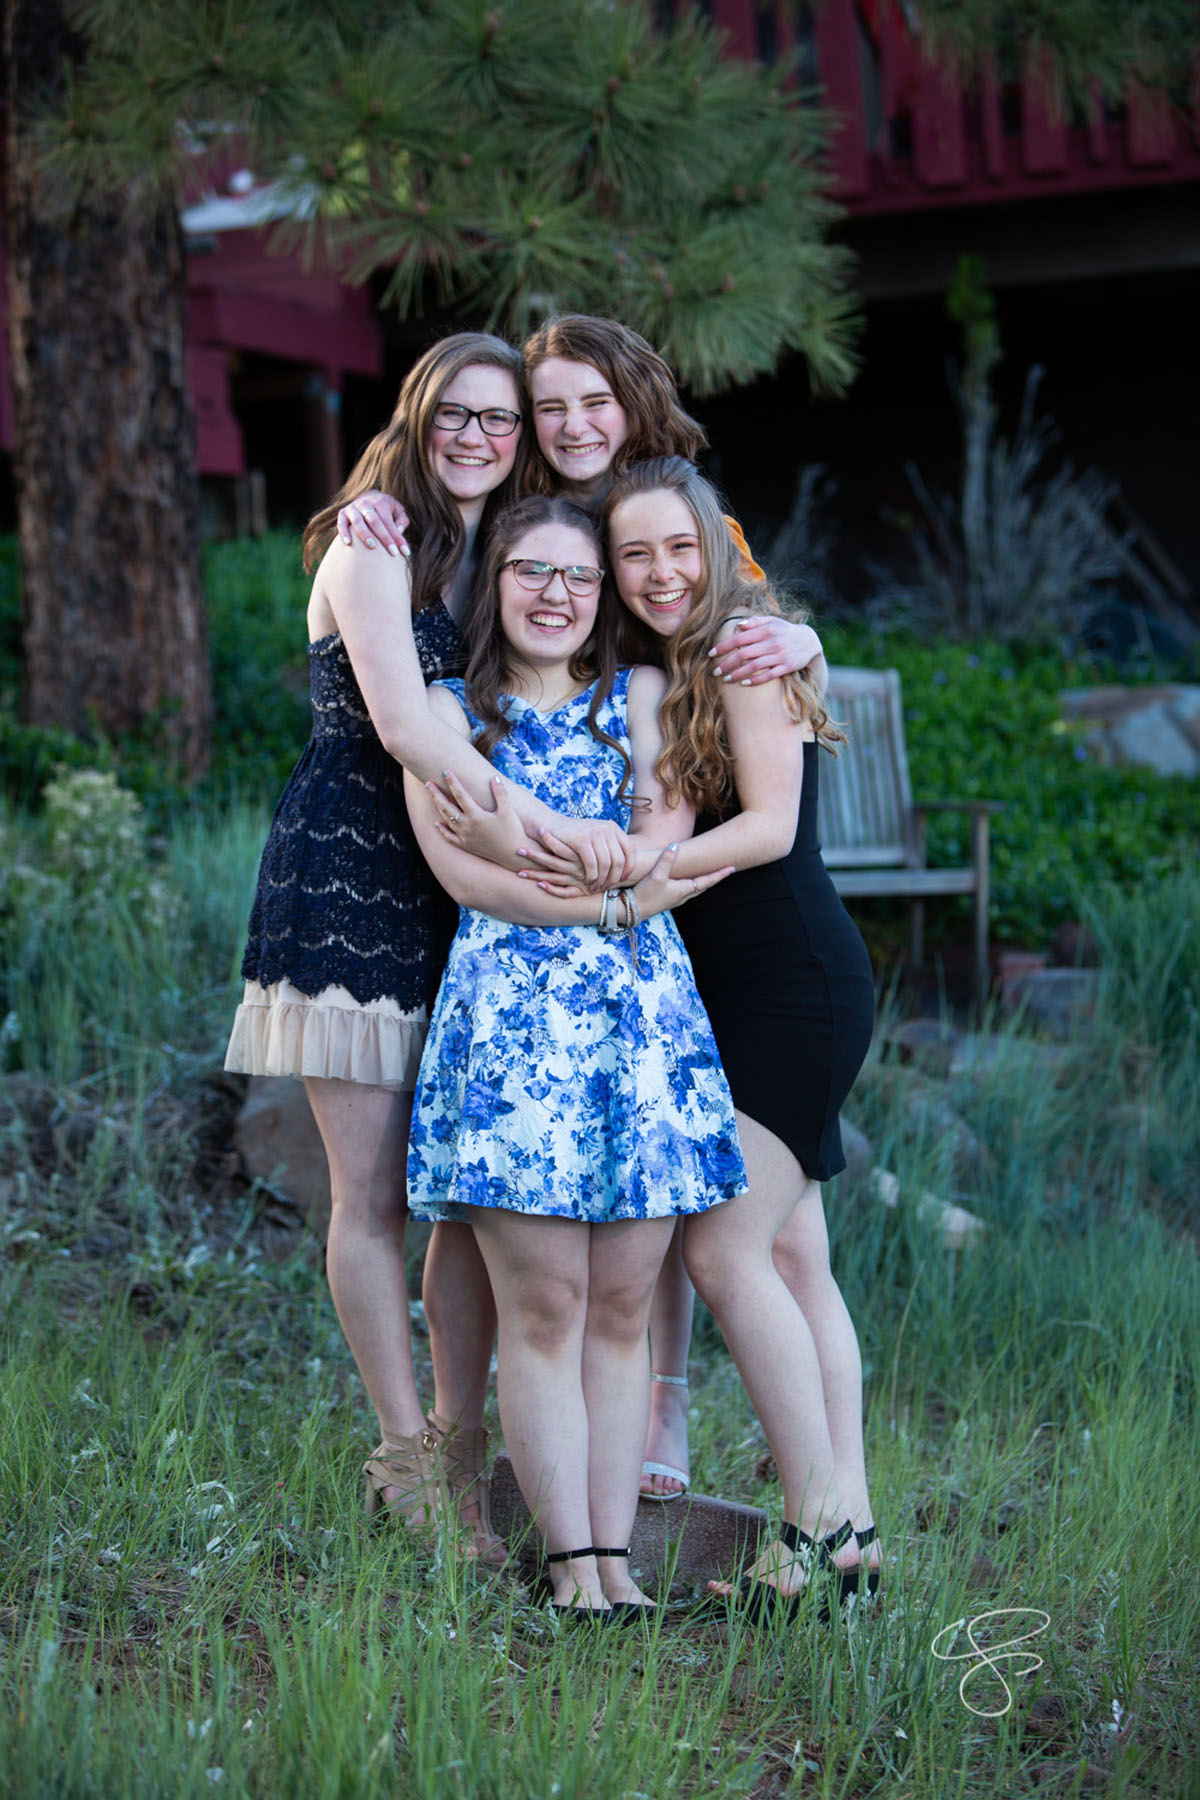 Close friends from multiple high schools in Flagstaff convene for prom photos as they head to the 2019 FALA Prom at Viola's Flower Garden on May 26, 2019. Photo by Sean Openshaw / www.SeanOpenshaw.com